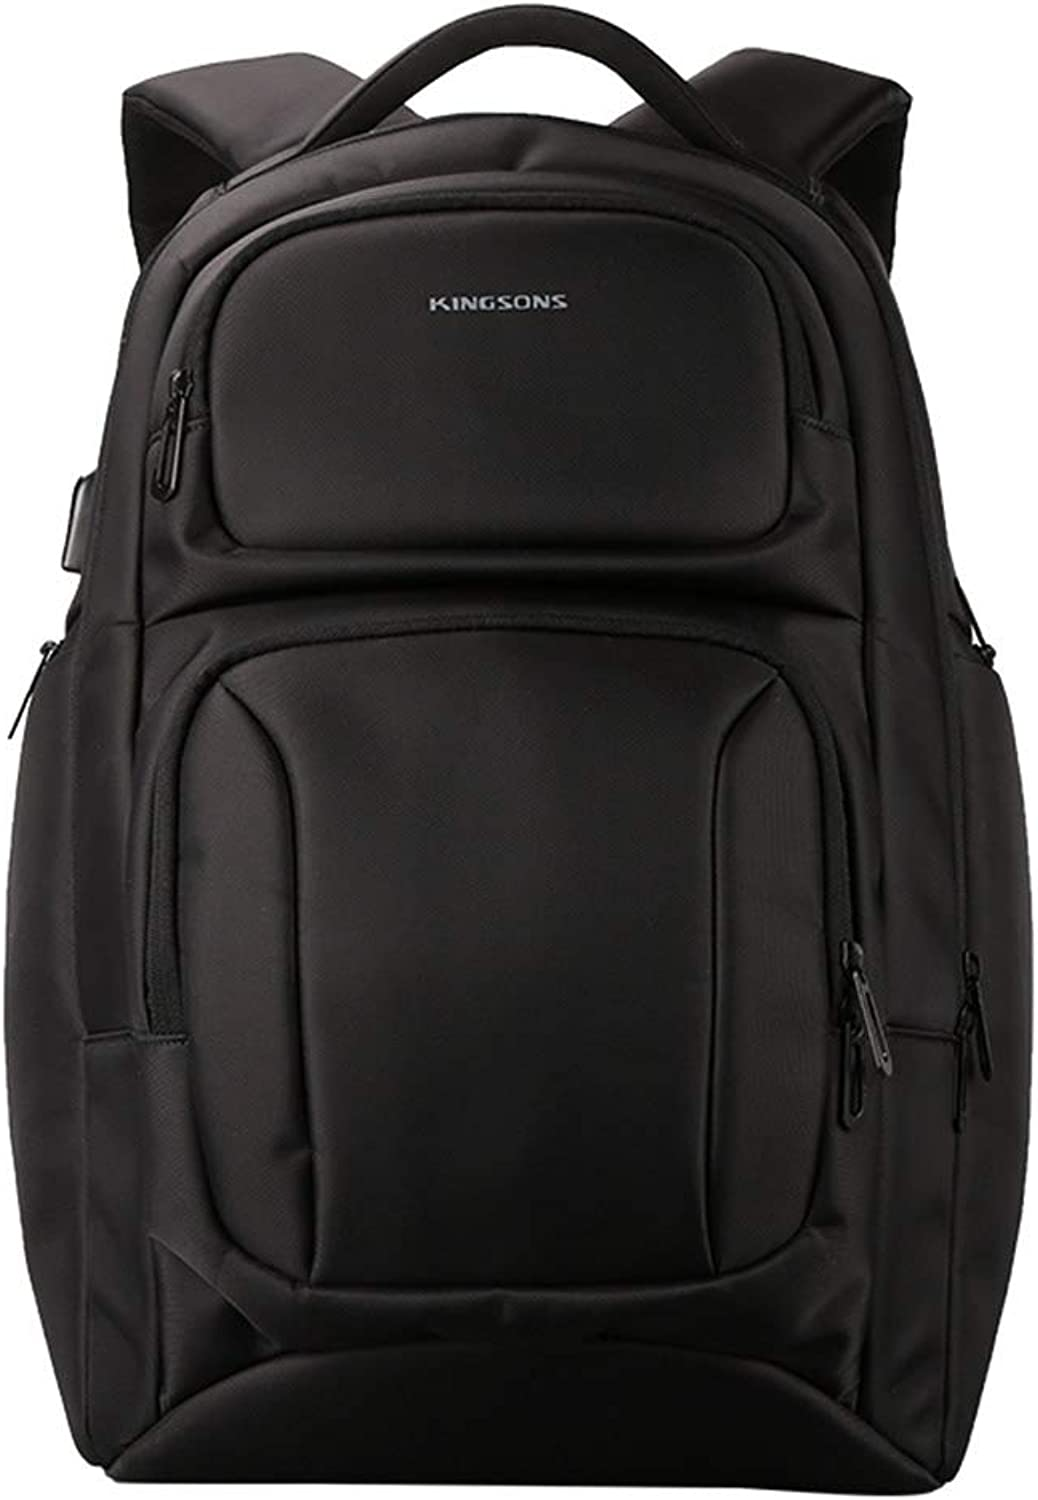 Travel Laptop backpack,Casual Polyester Shockproof Waterproof backpack with USB Charging Port, 15.6 inches